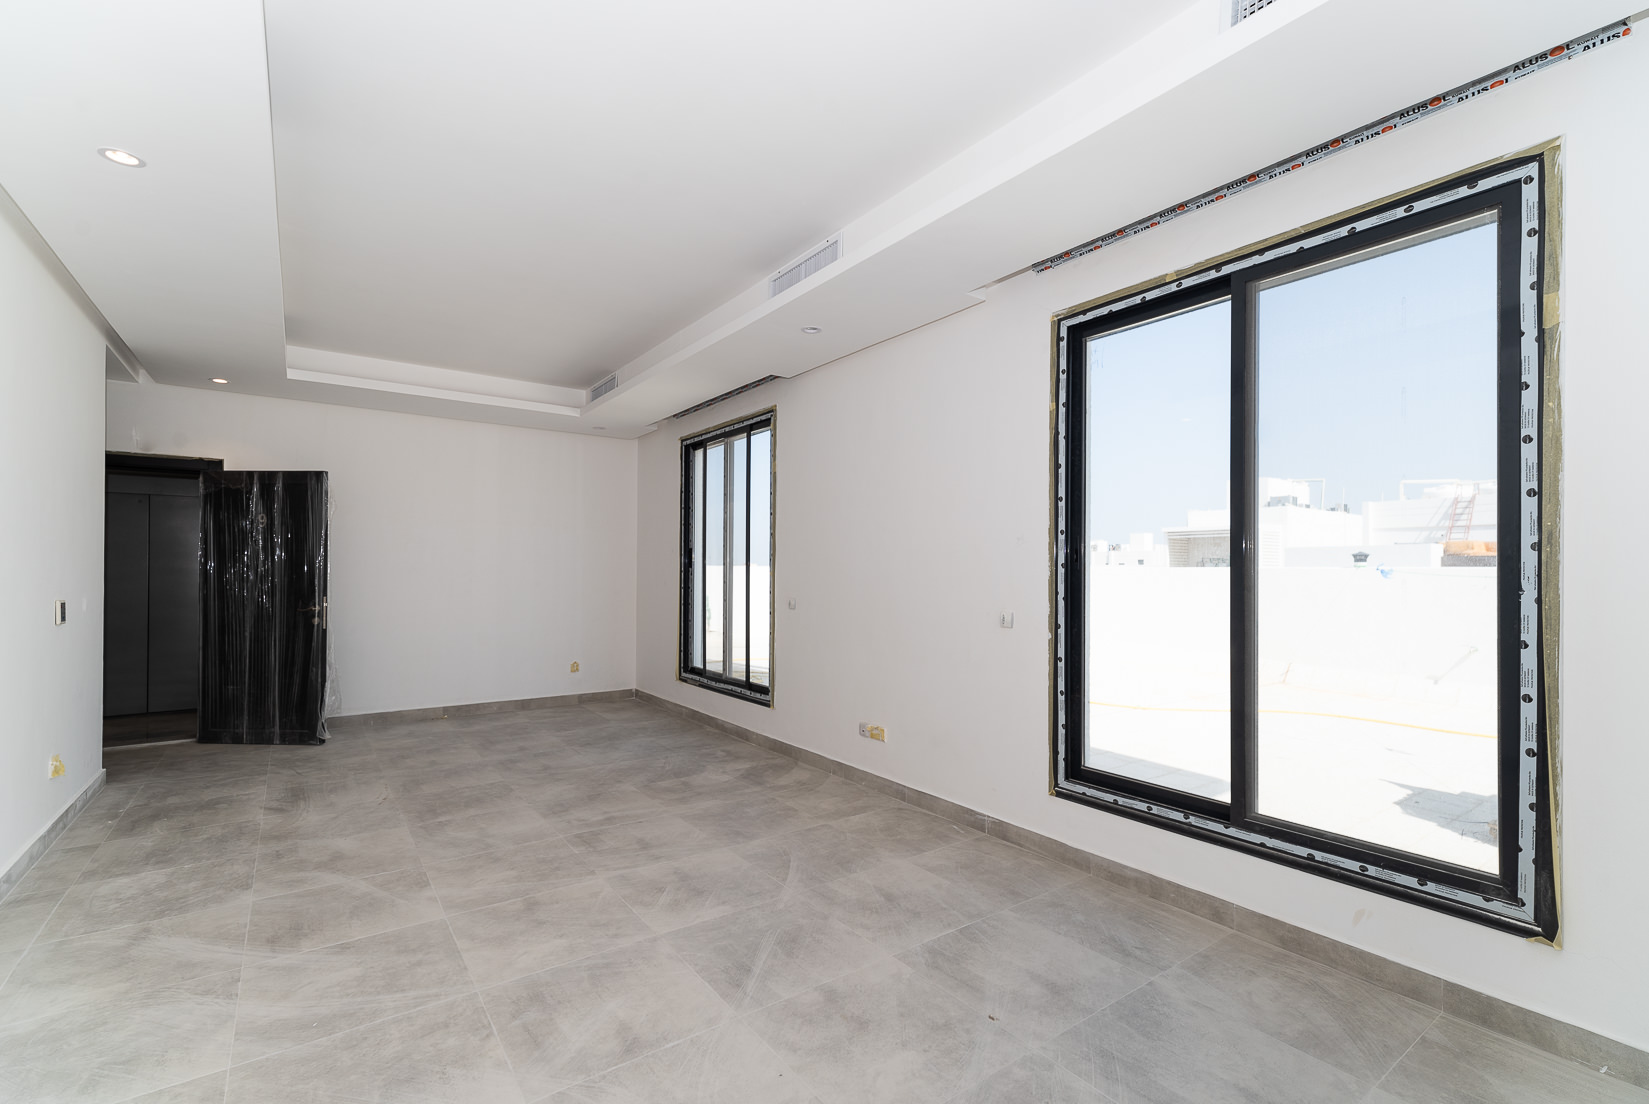 Fnaitees – new, unfurnished, two bedroom apartment w/terrace